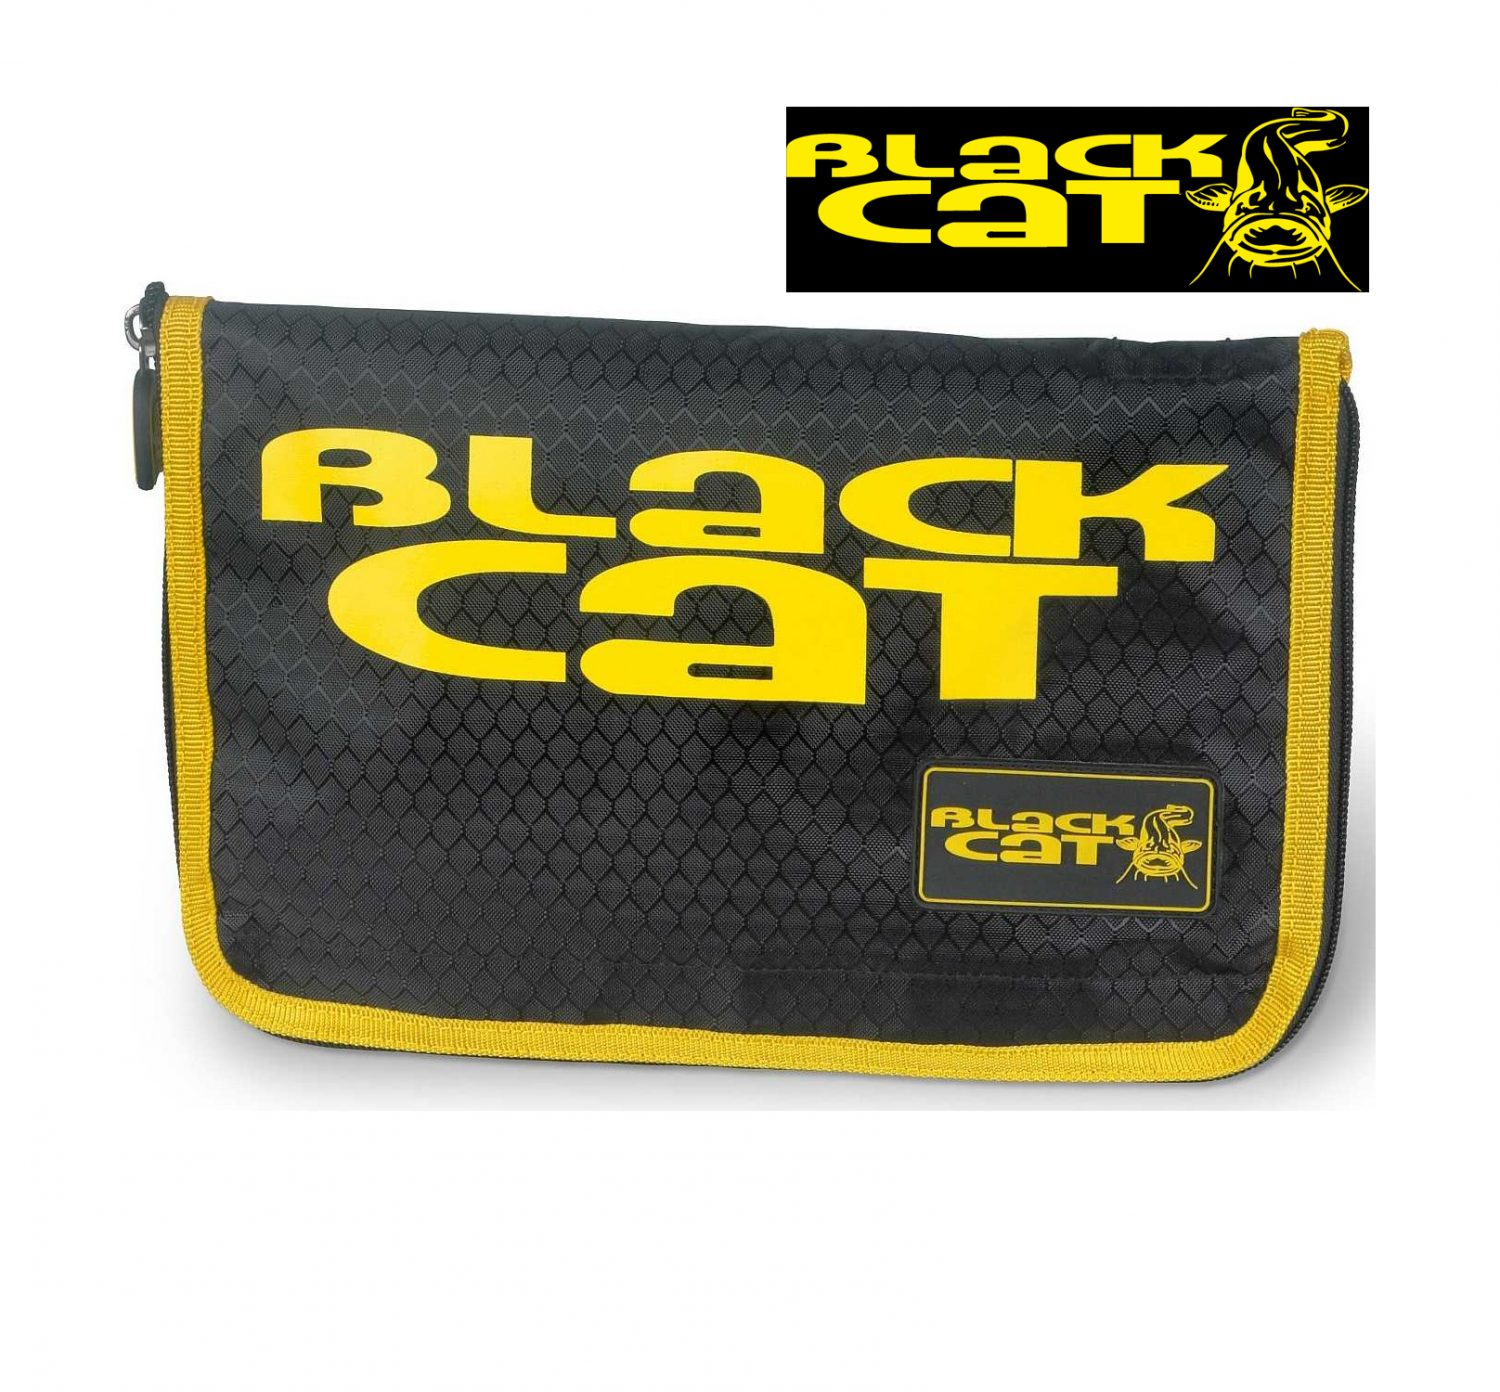 Black Cat Rig Wallet